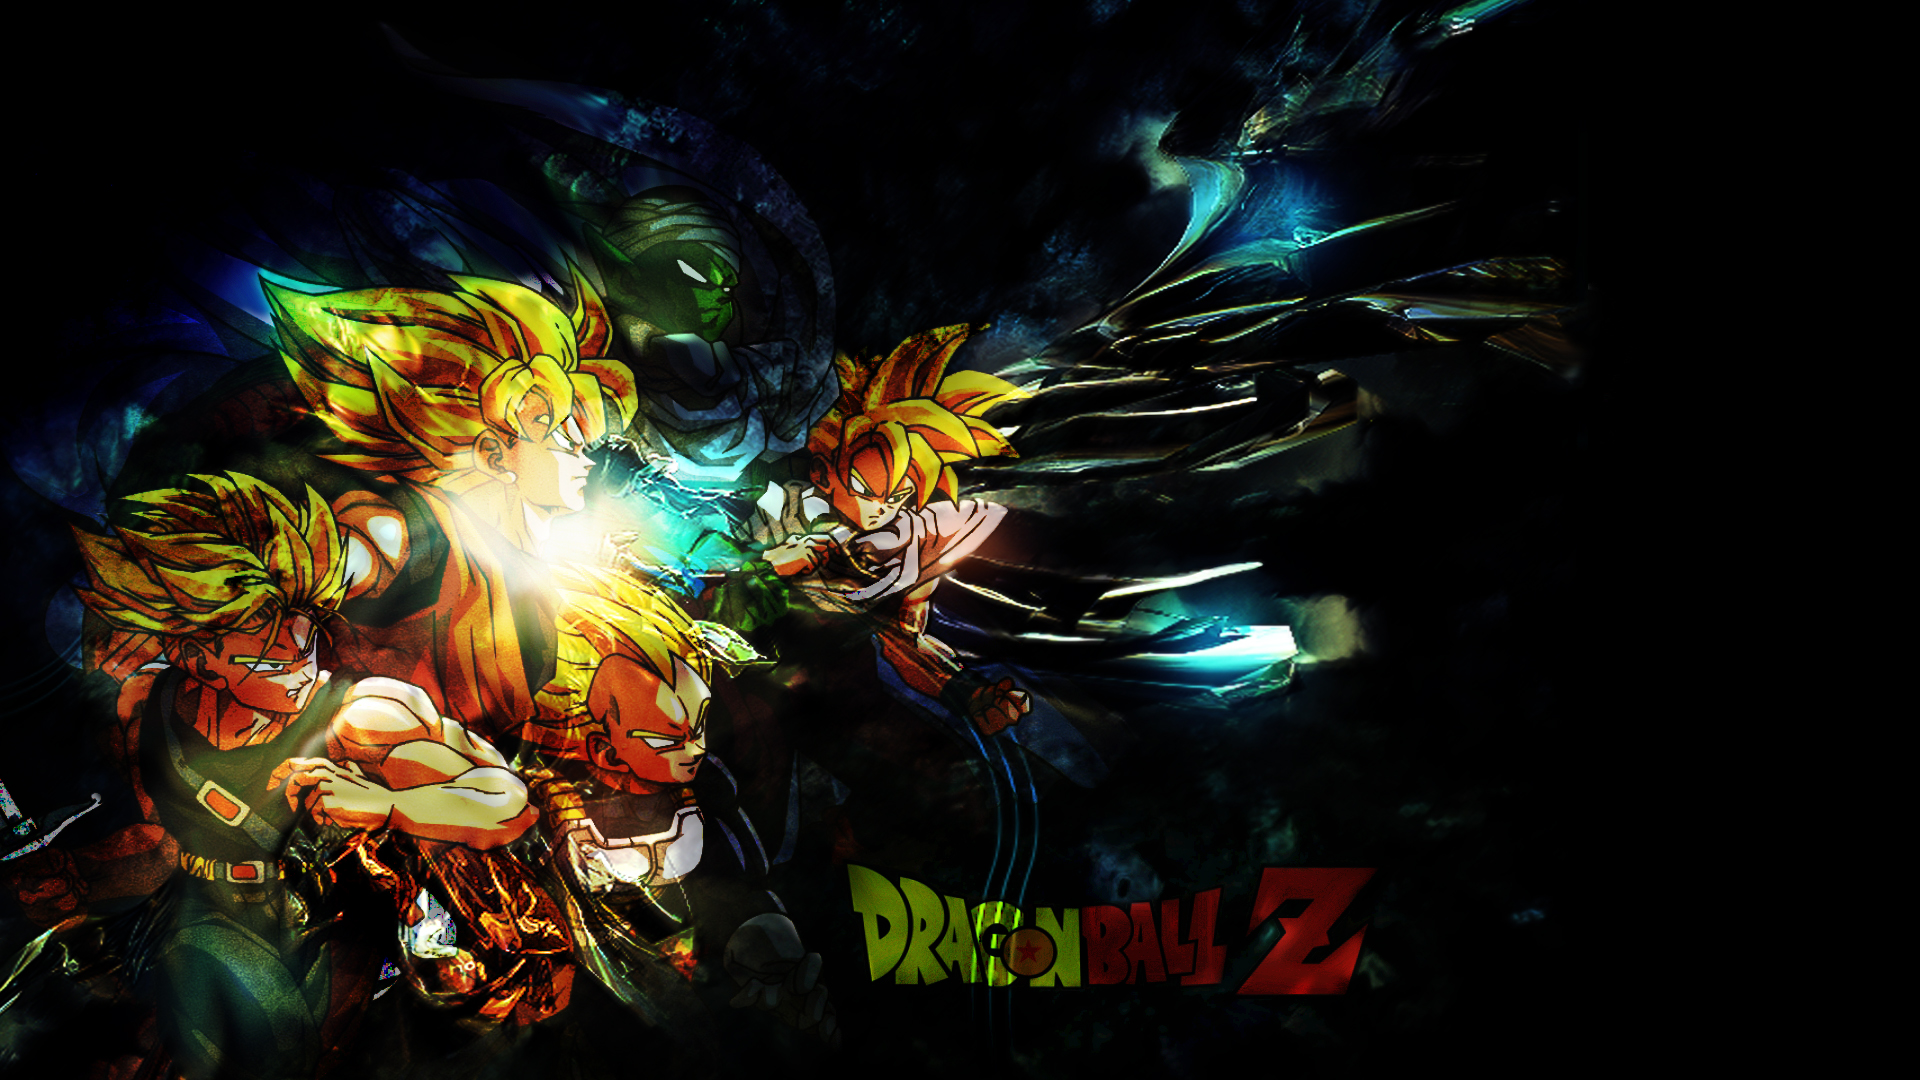 Cool Dragon Ball Z Wallpapers Posted By John Anderson